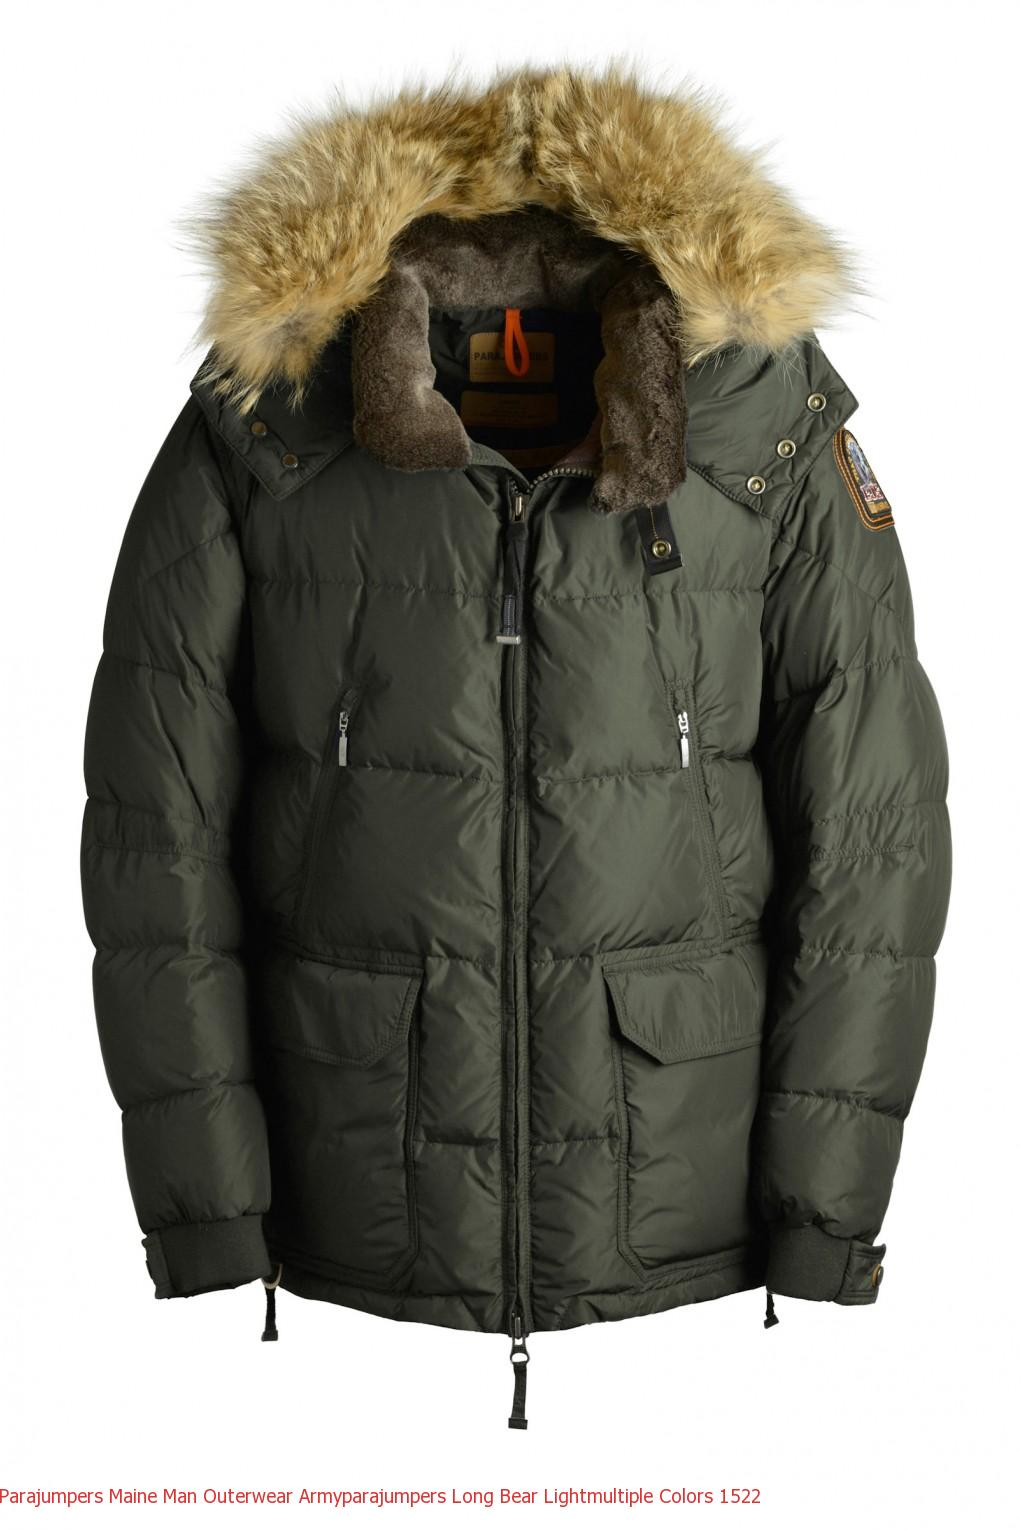 e750bd9d588f Canada Goose Clothing Outlet Parajumpers MAINE Man Outerwear Army ...